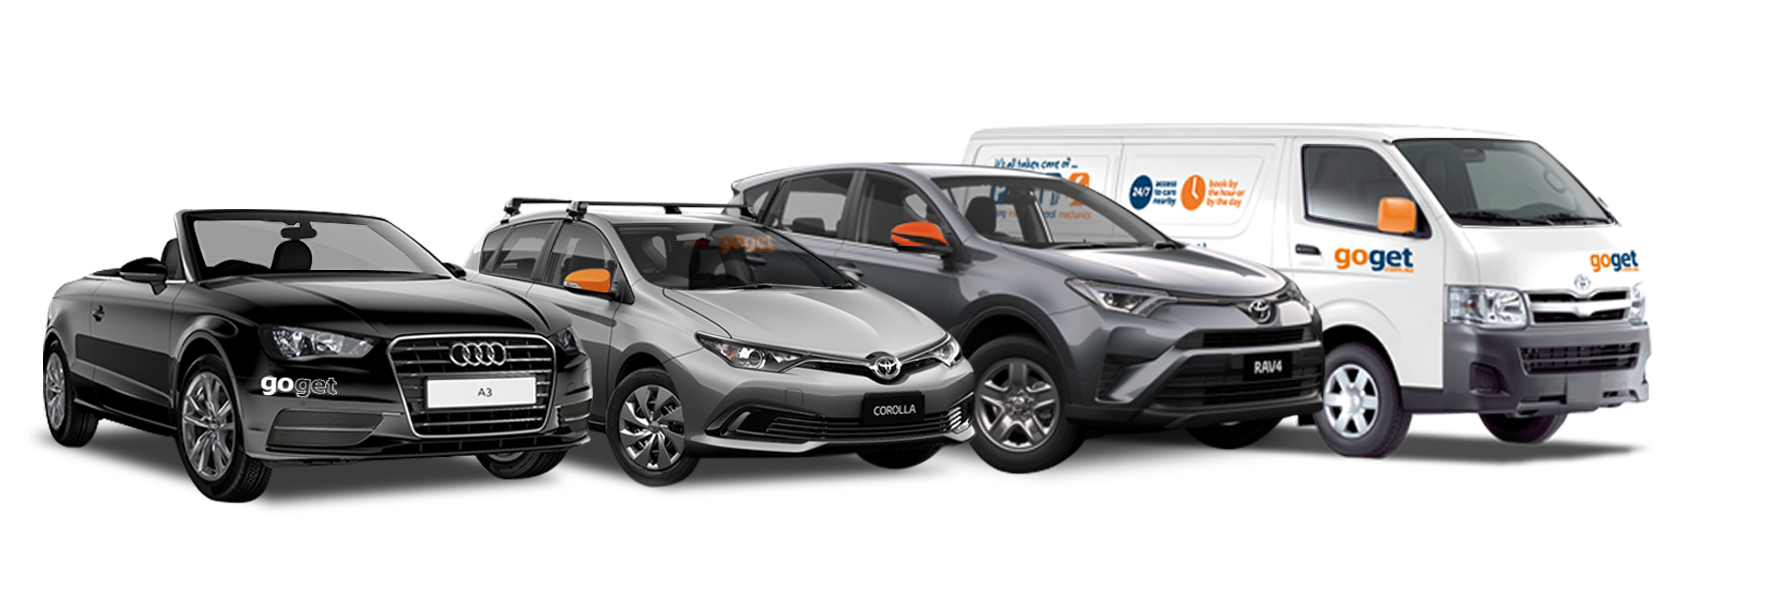 Full Hd Car Pngs - GoGet Car Share Rates and Pricing